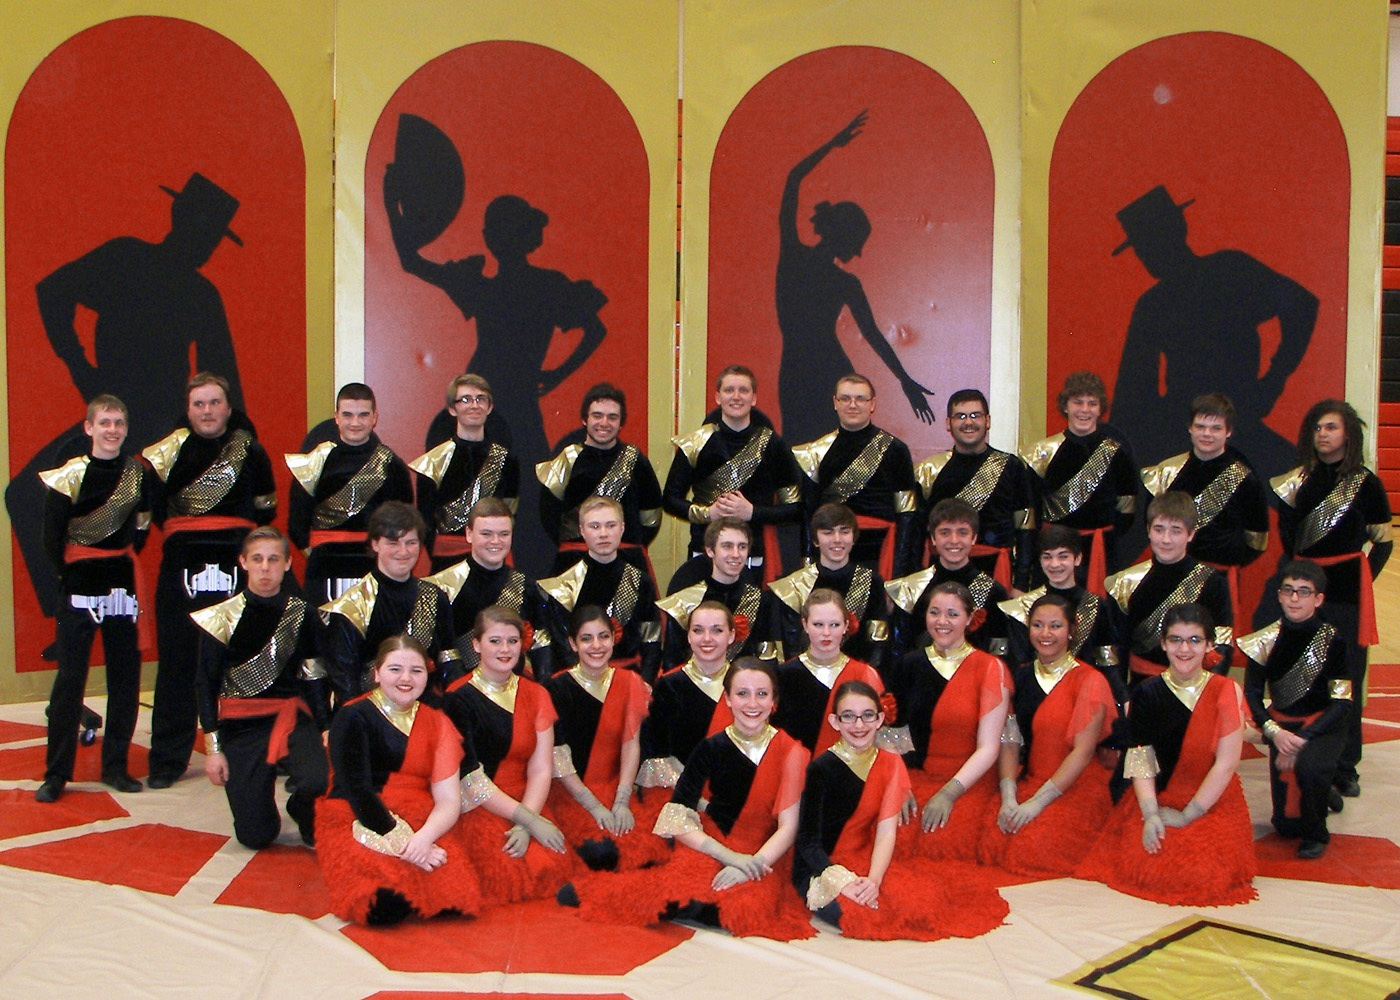 The Hilton High School Winter Drumline competed with 217 drumlines from around the world in the 2014 Percussion World Championships in Dayton, Ohio. They placed eighth.